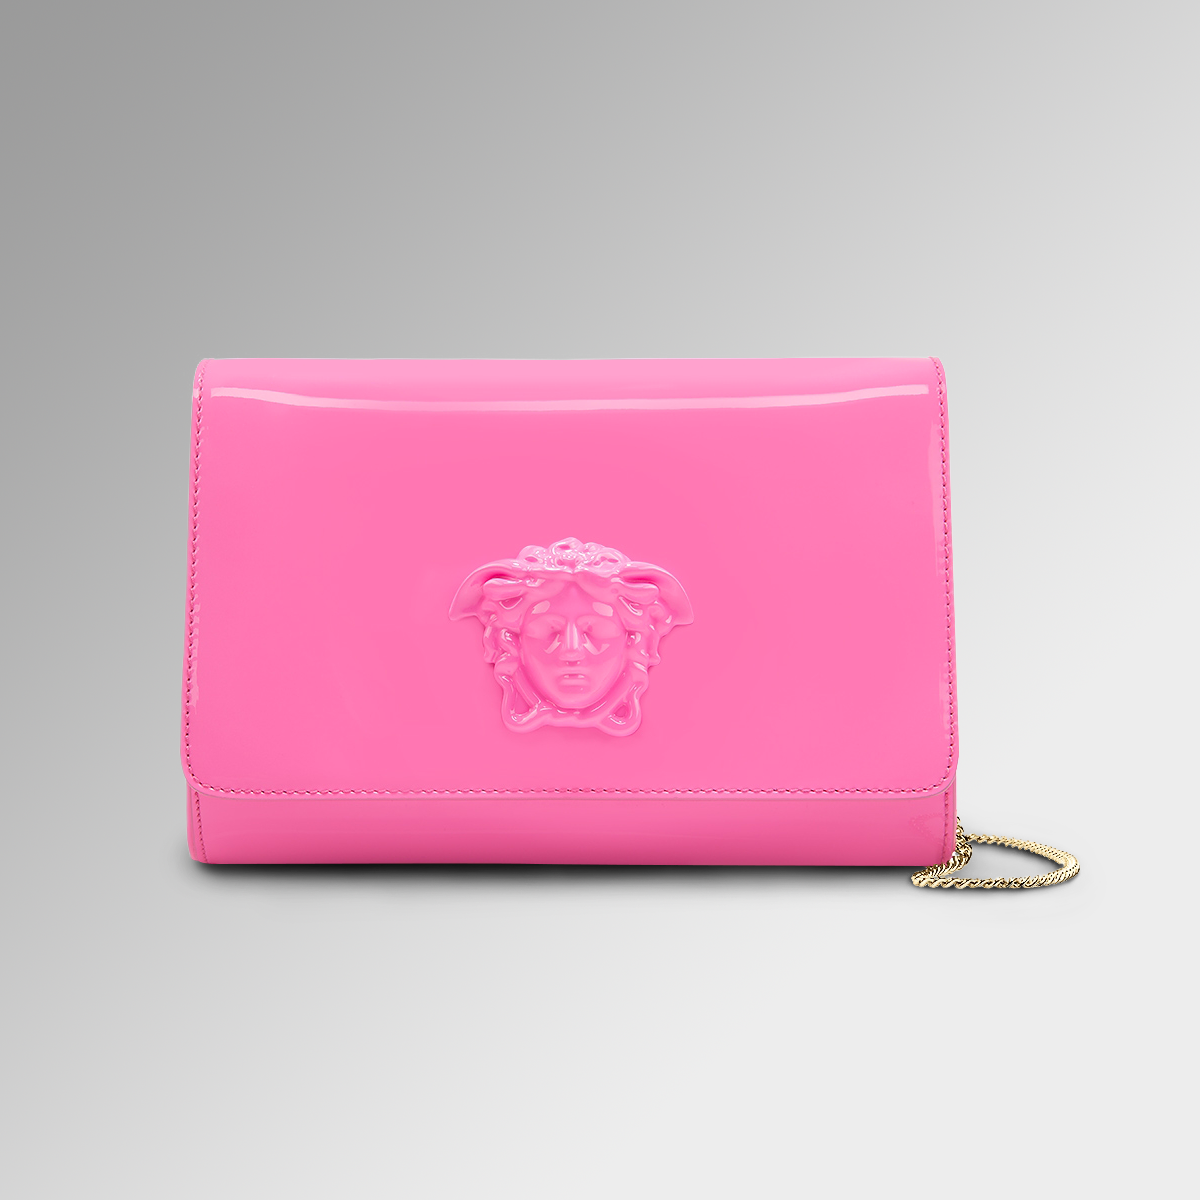 52c8b5640391 Pink attitude for this  VersacePalazzo bag. Discover more about the  Versace  Women s Pre